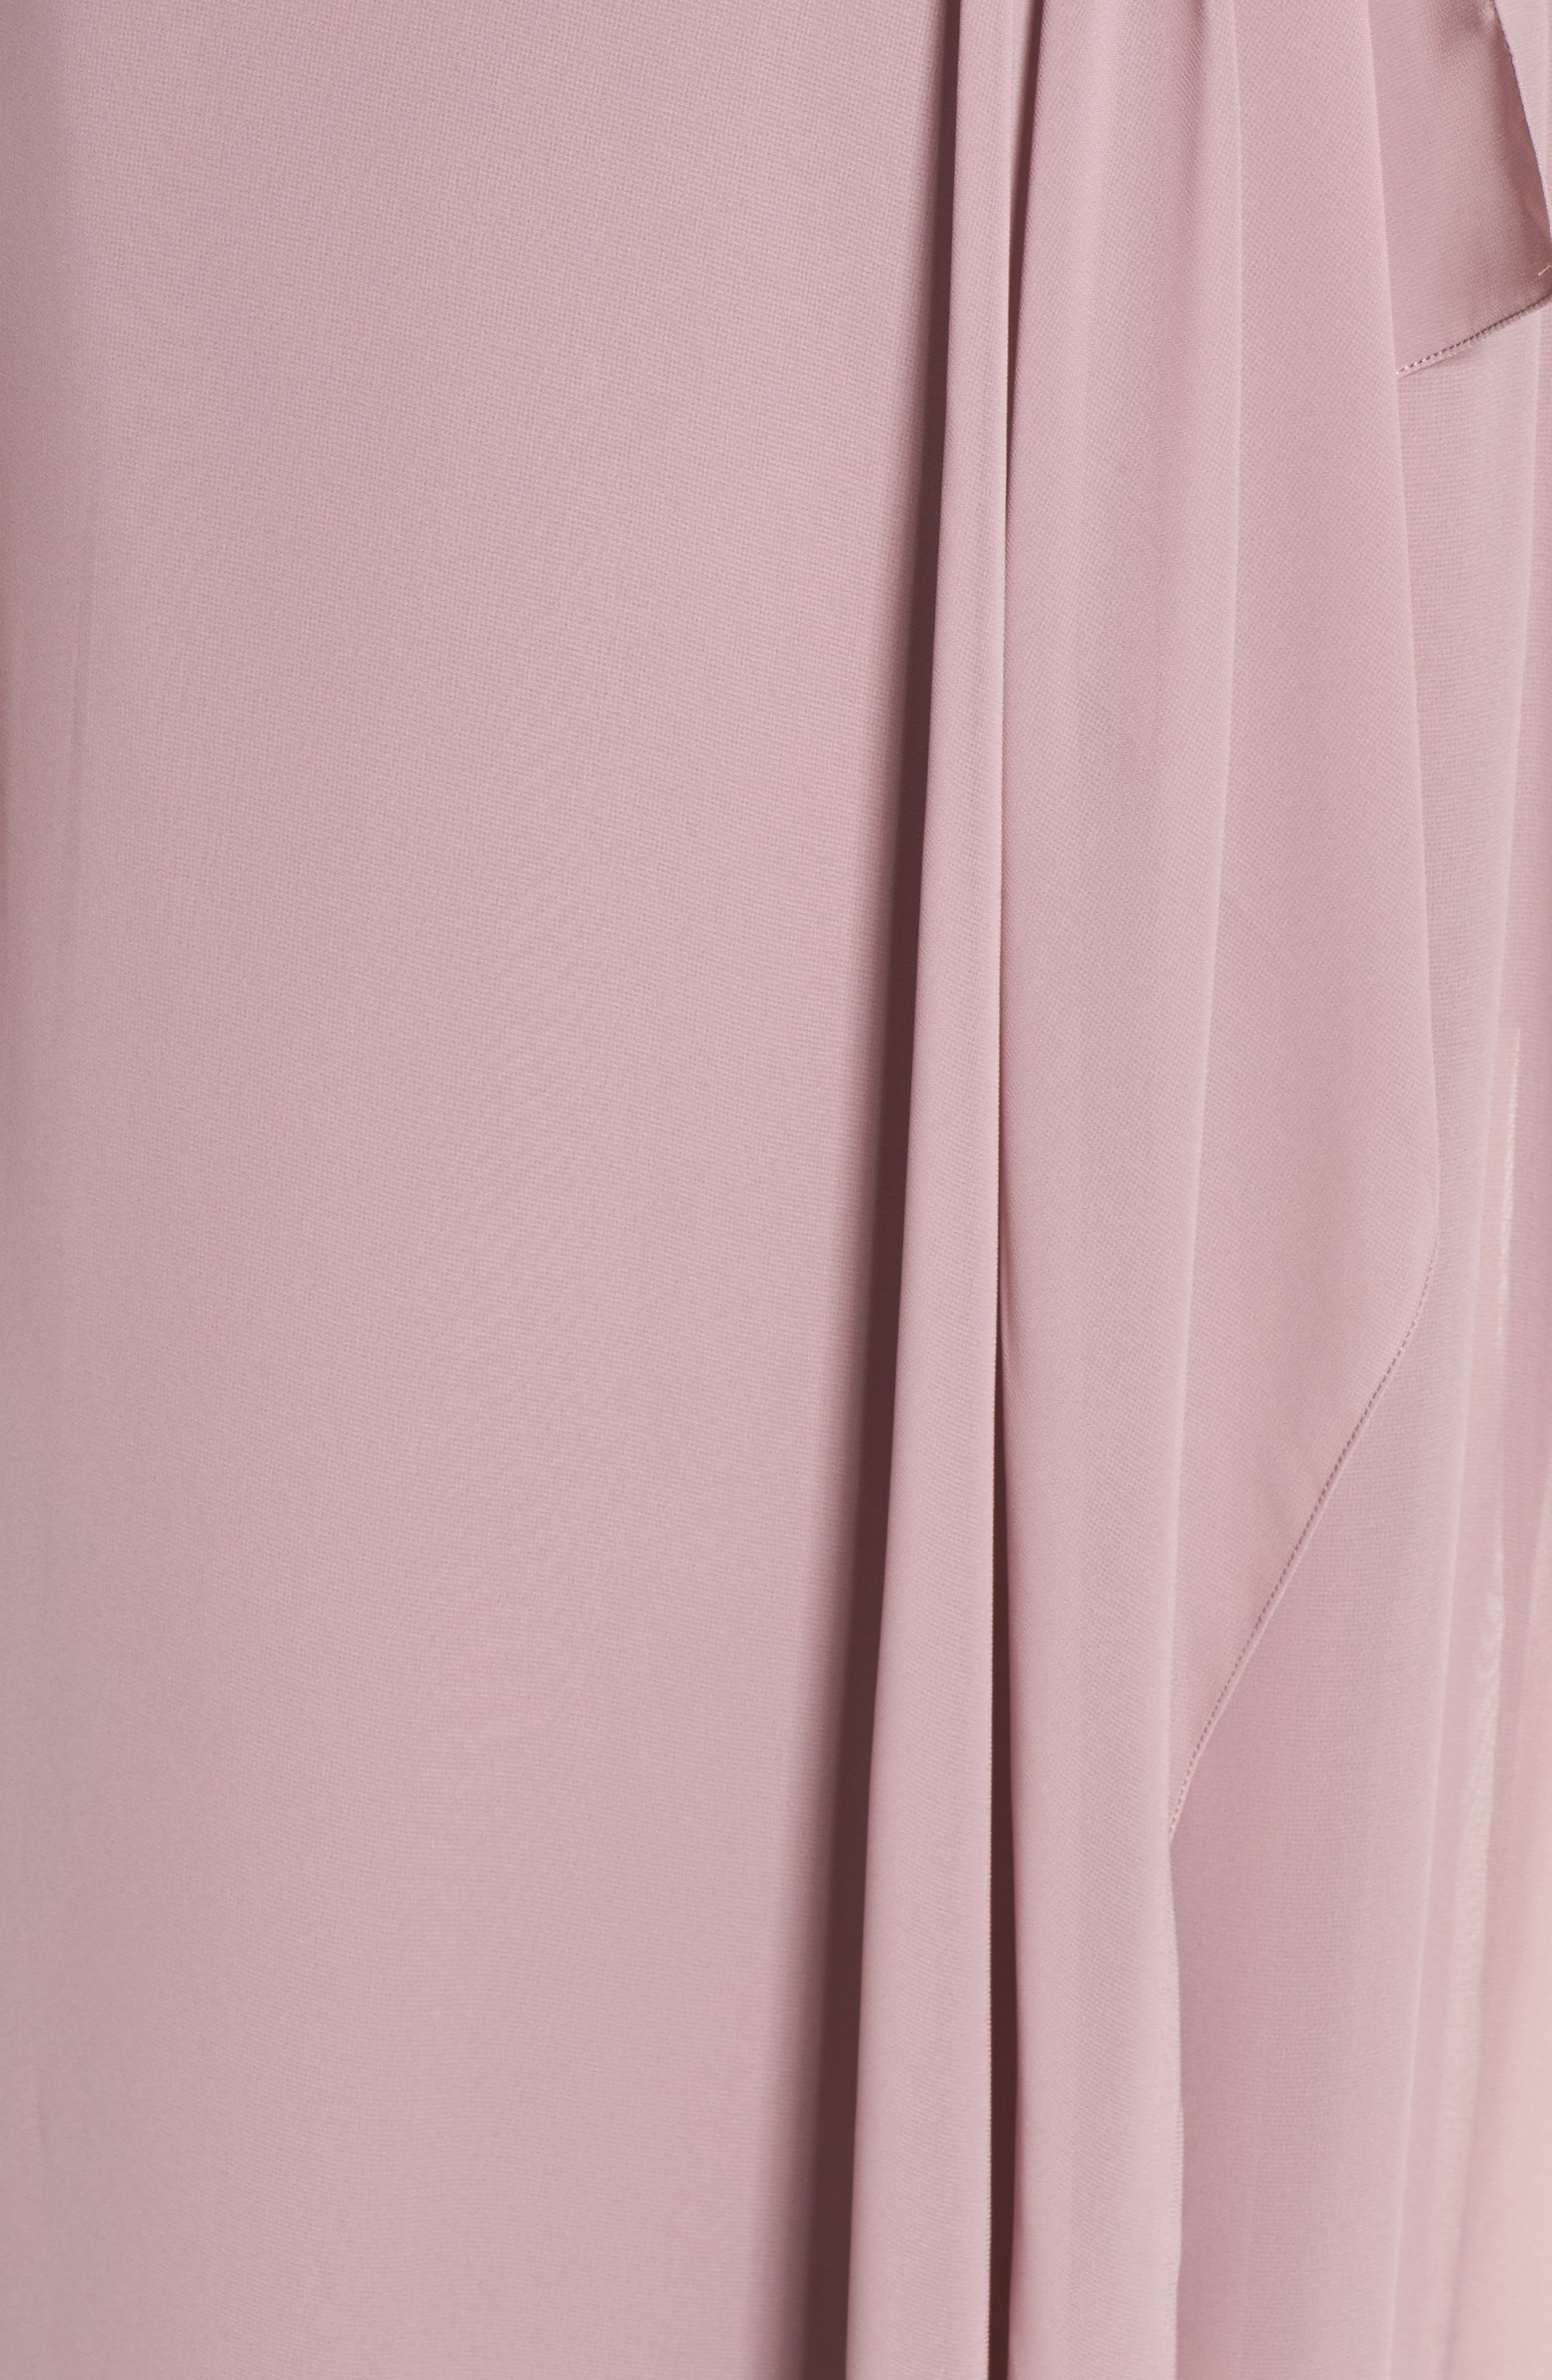 'Drew' Ruffle Front Chiffon Gown,                             Alternate thumbnail 49, color,